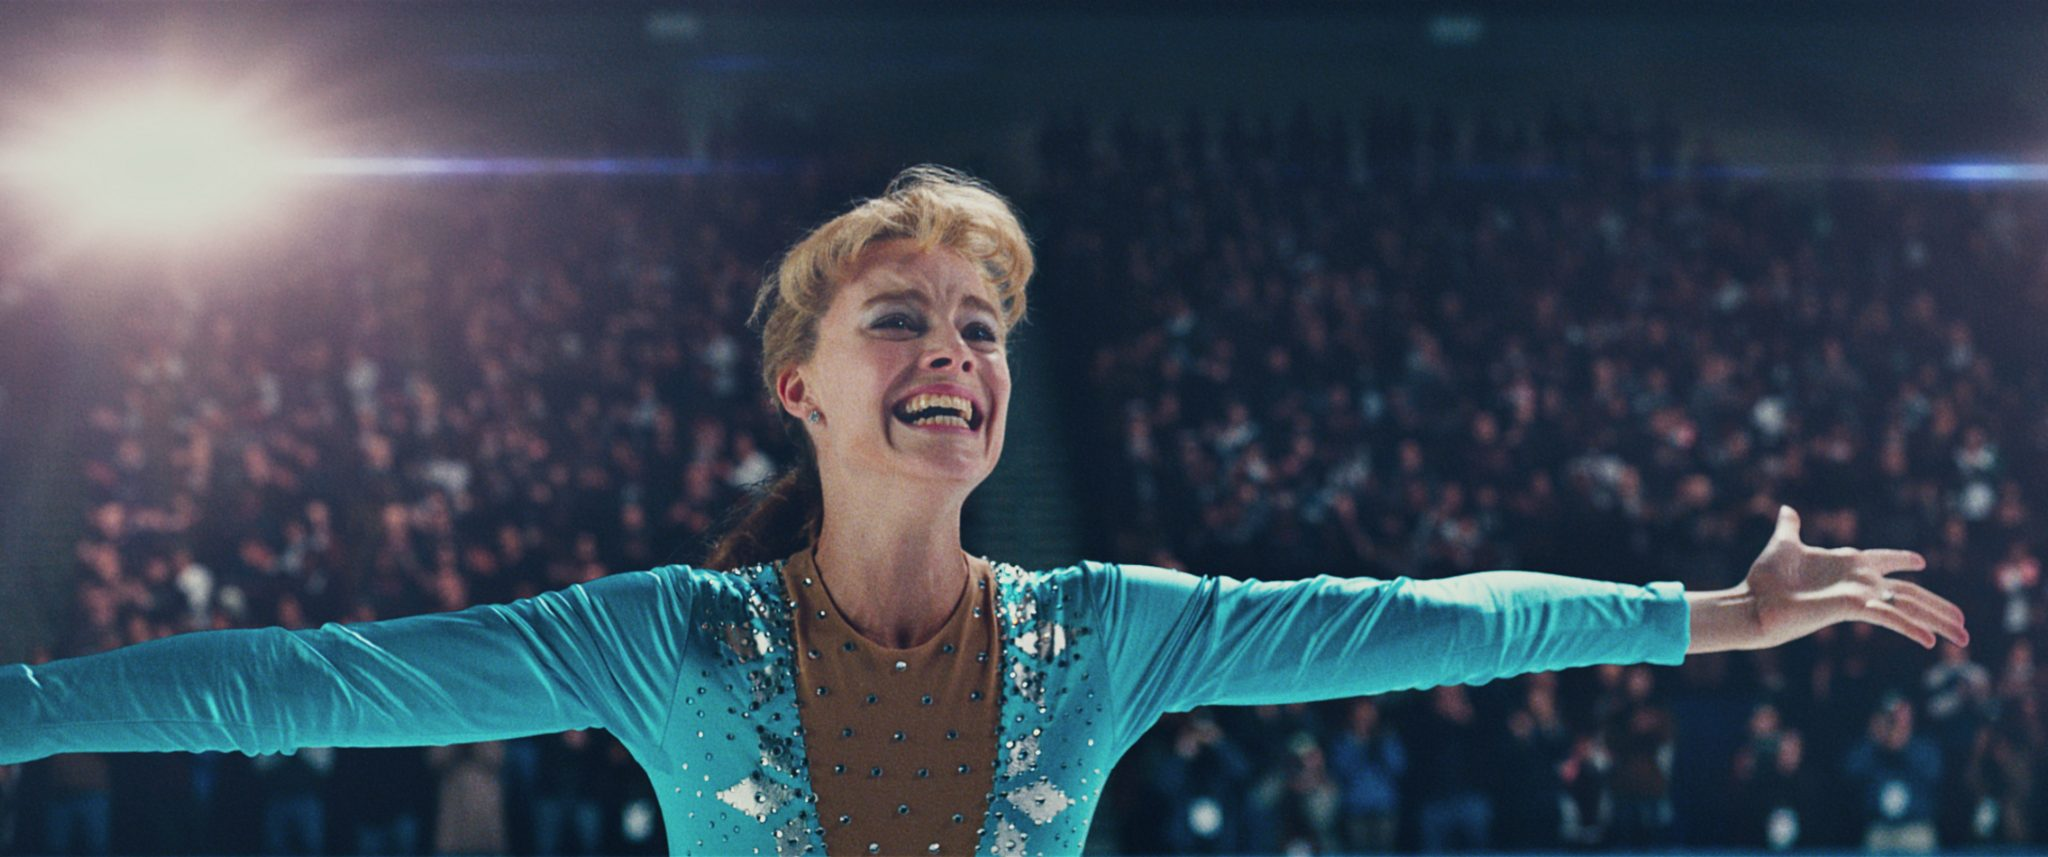 'I, Tonya' is brash, bold, non-stop madness that finds the biopic at its best